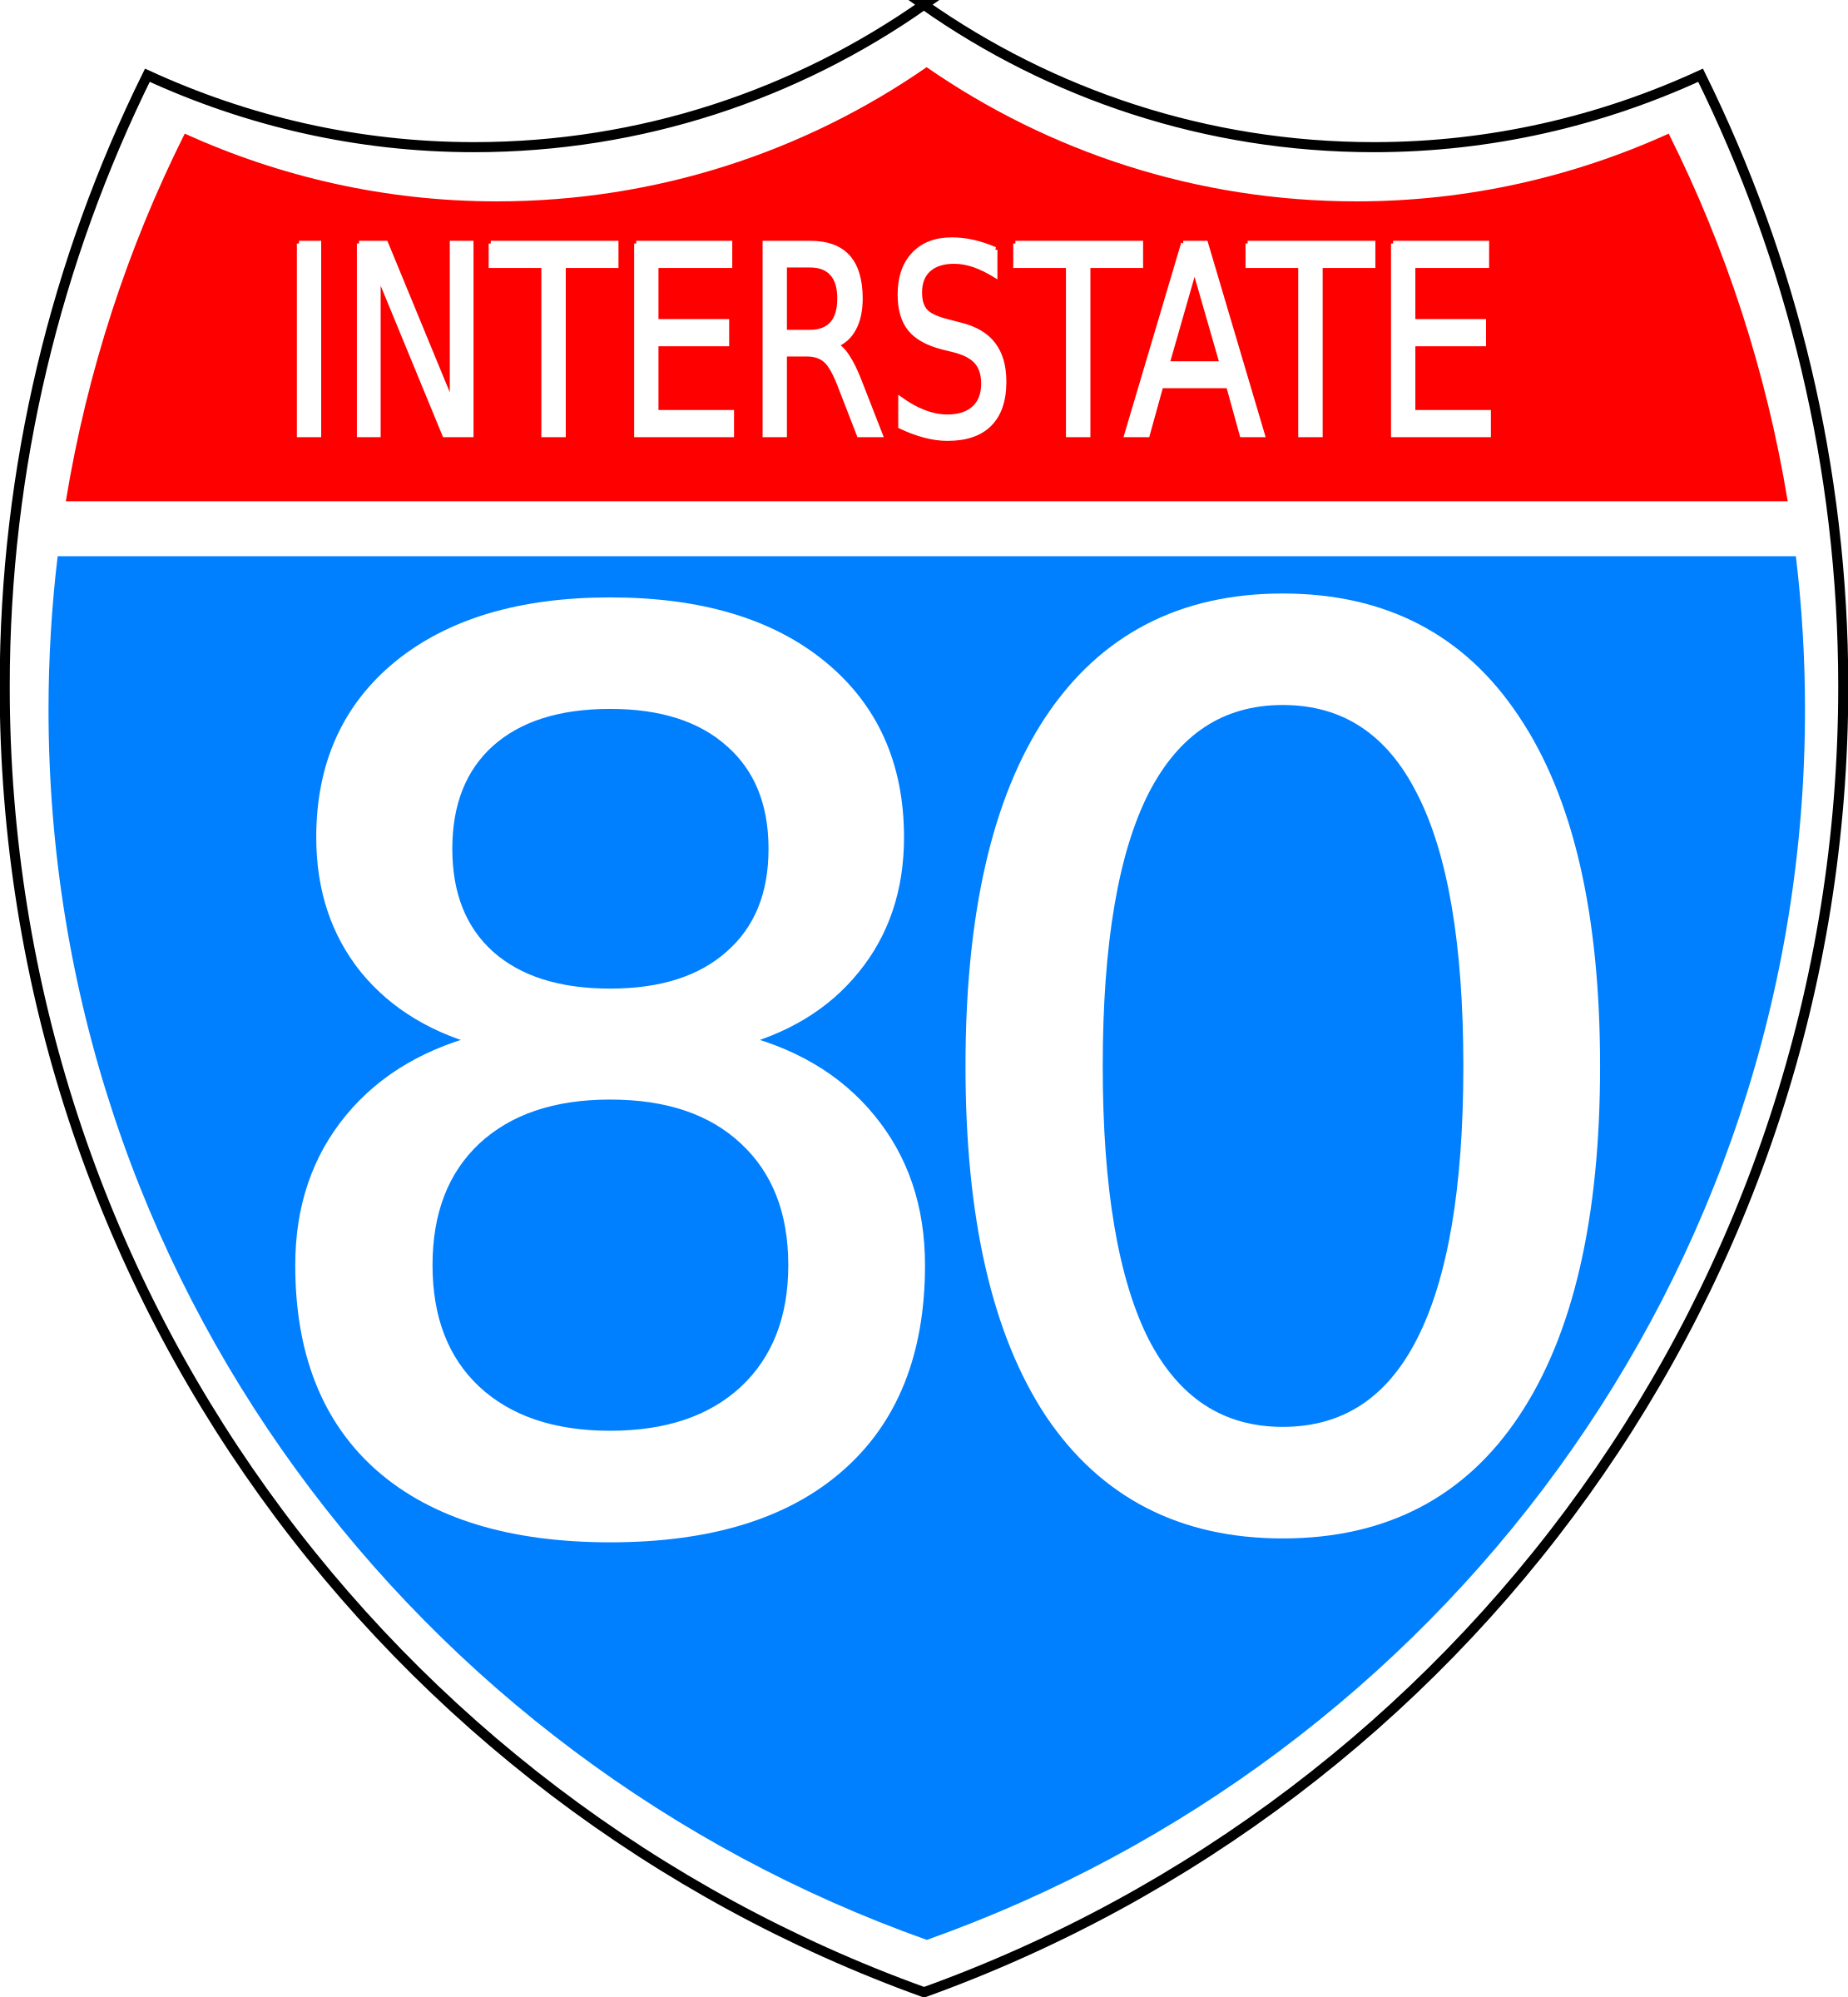 Interstate highway sign by Anonymous